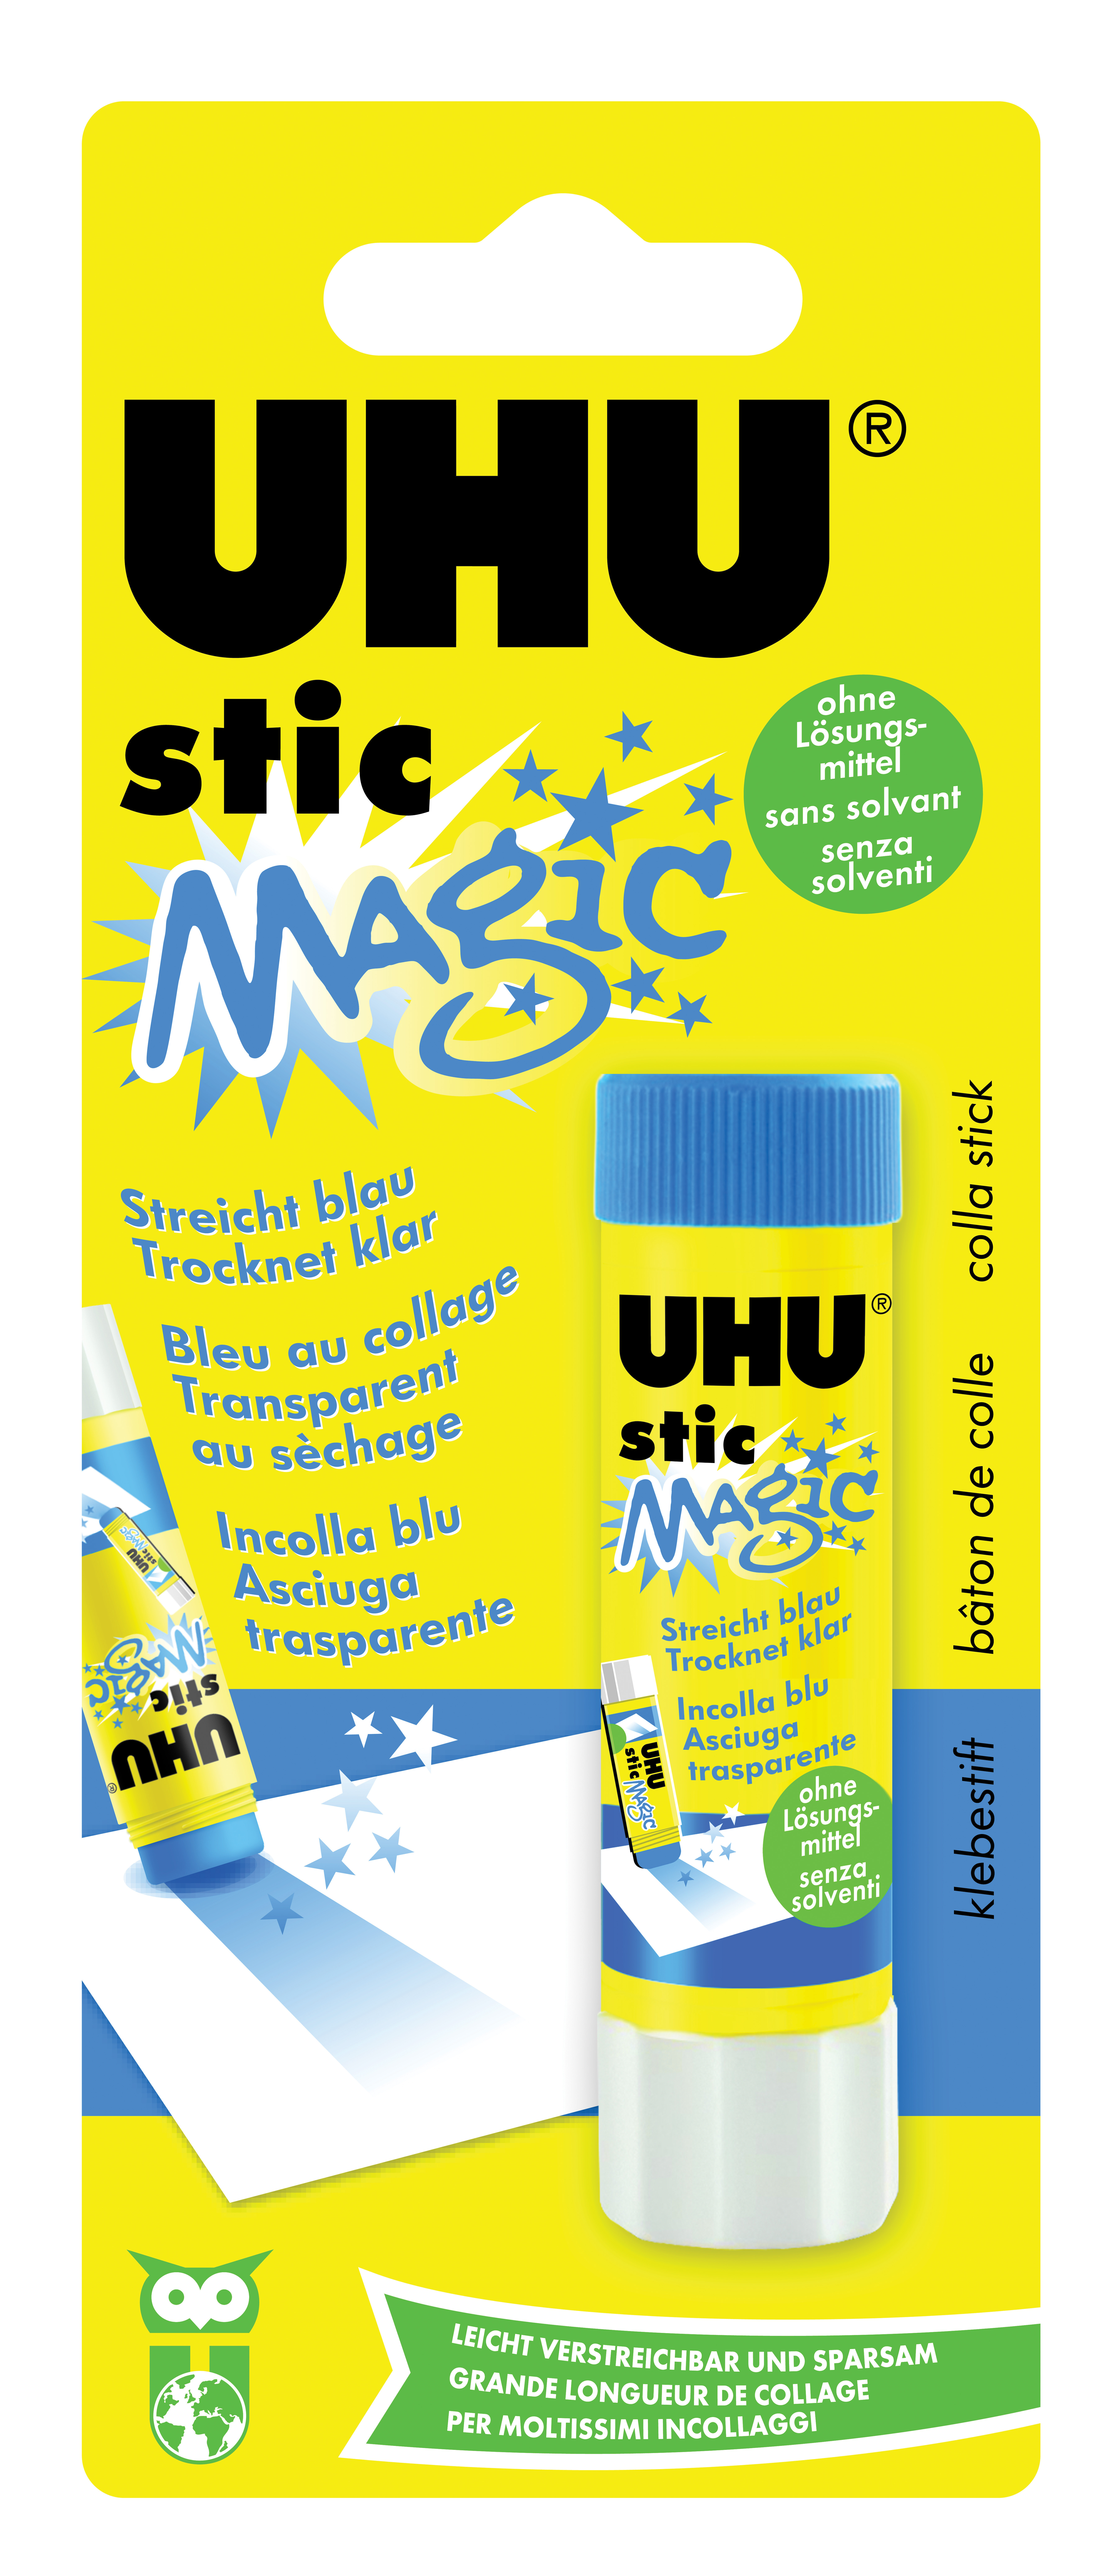 UHU stic MAGIC Klebestift Infokarte 8,2g